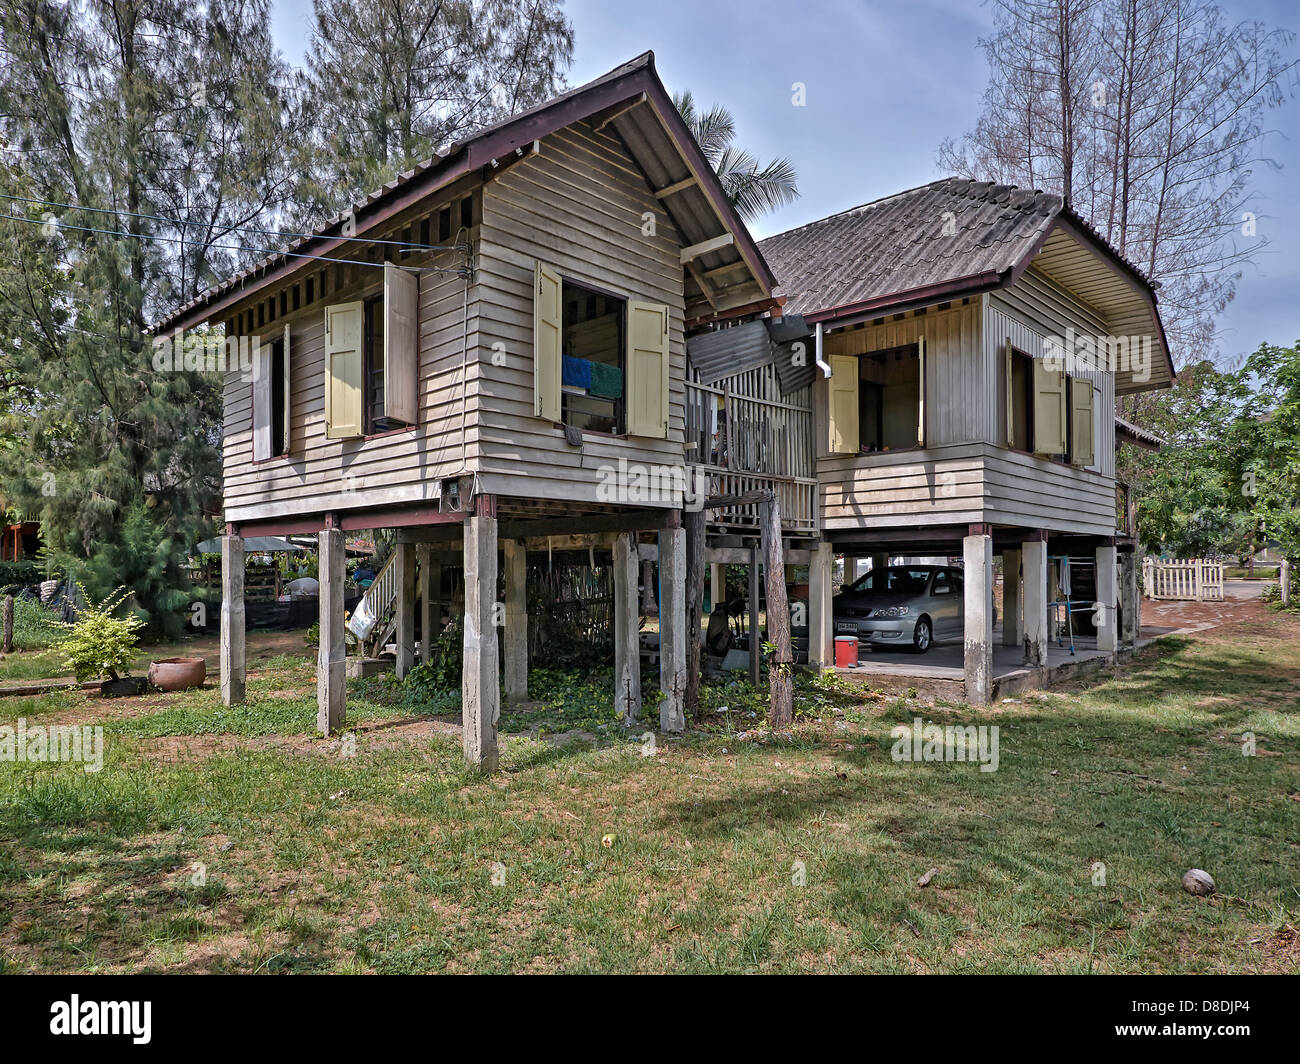 Traditional Thai Wooden House On Stilts With Car Parked Beneath. Thailand  S. E. Asia